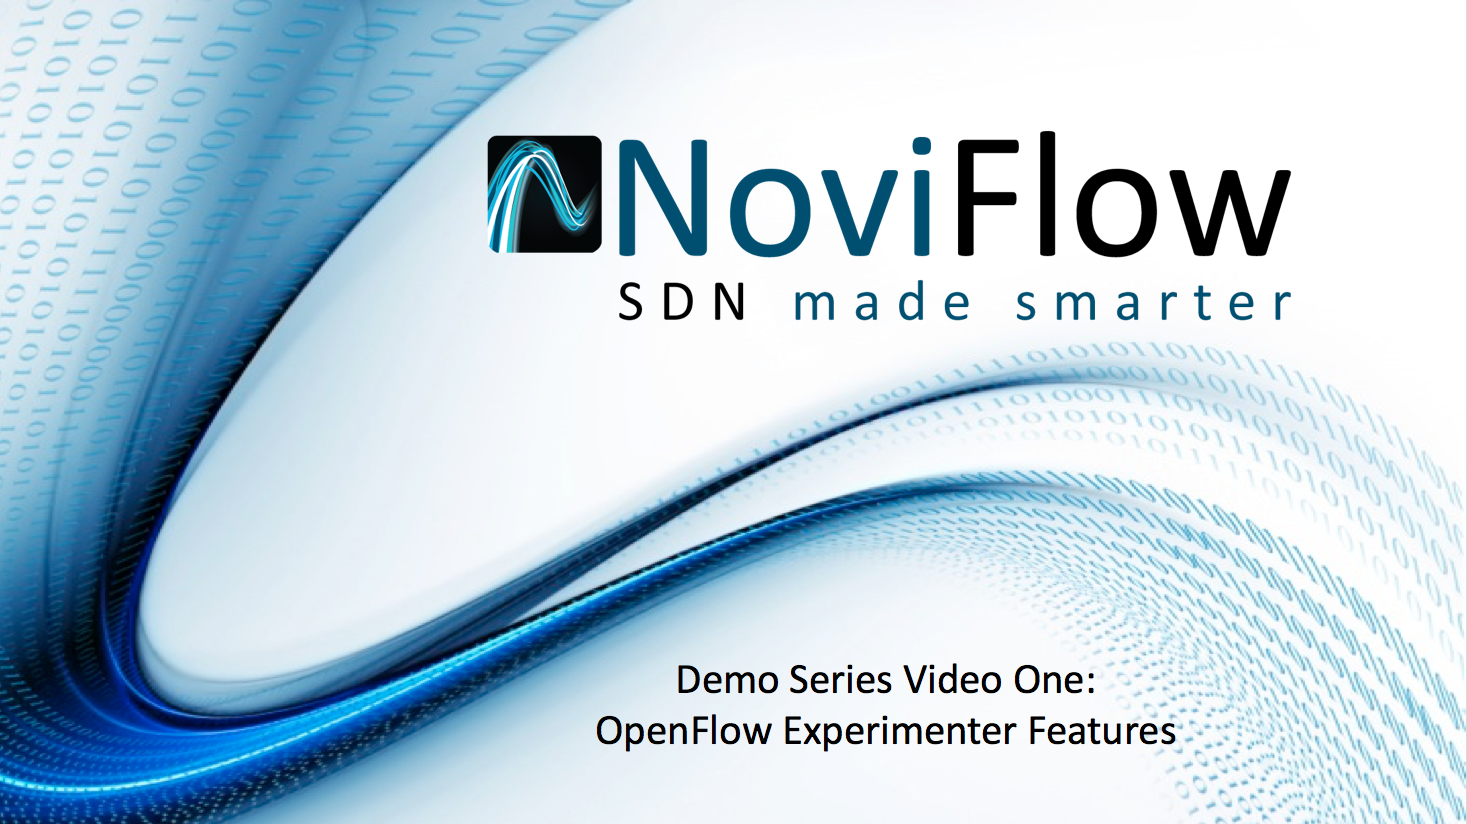 NoviFlow Video One: OpenFlow Experimenter Features,